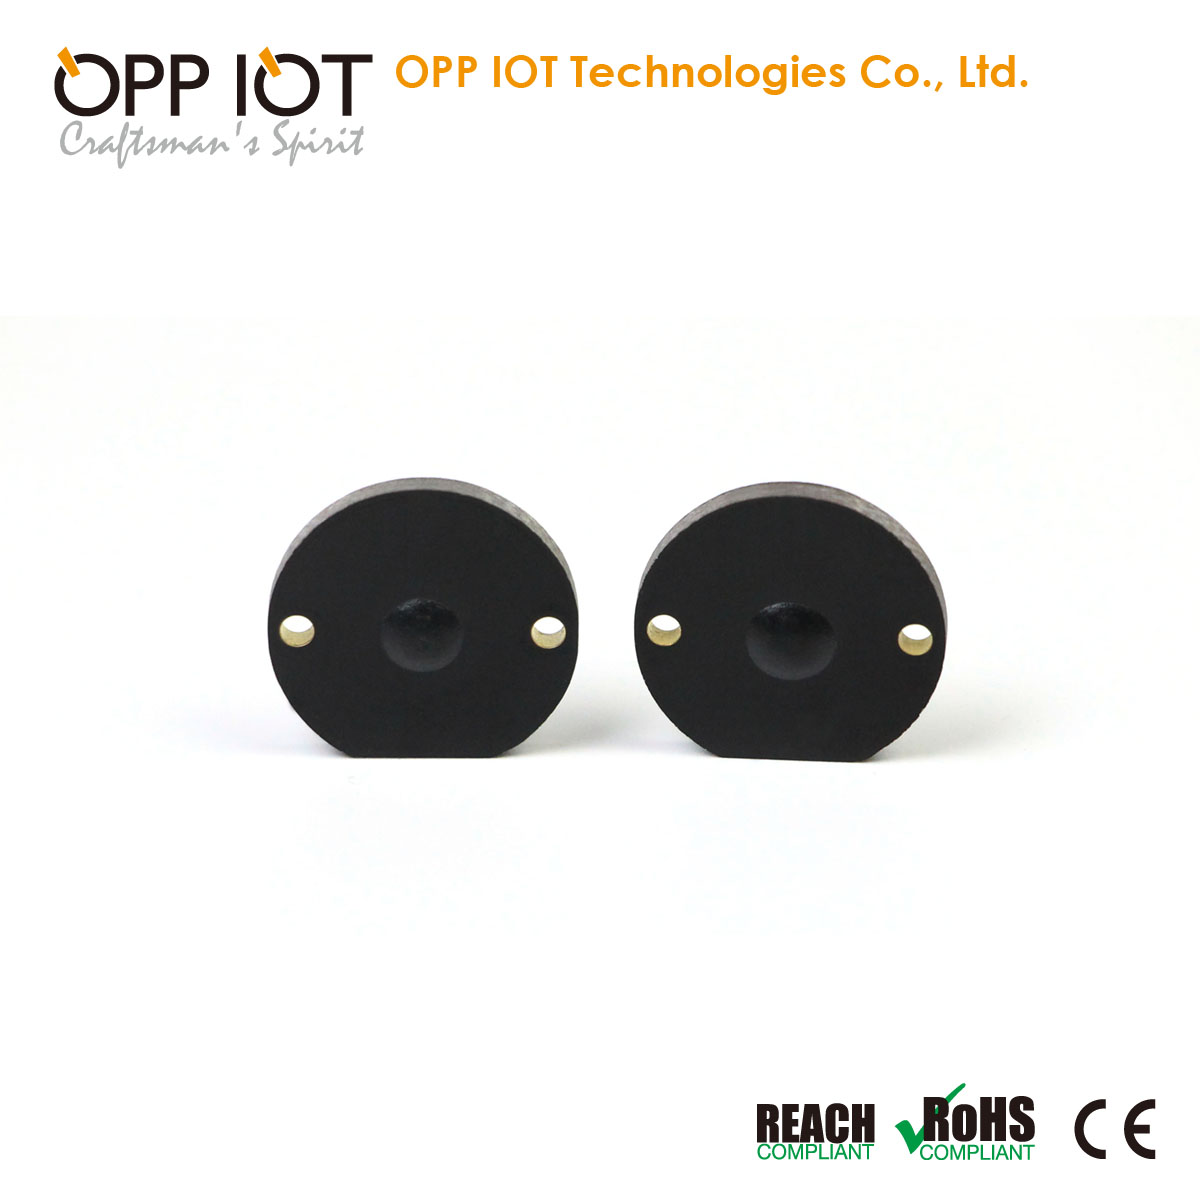 860-960MHz PCB Industrial Asset Tracking Metal Tag